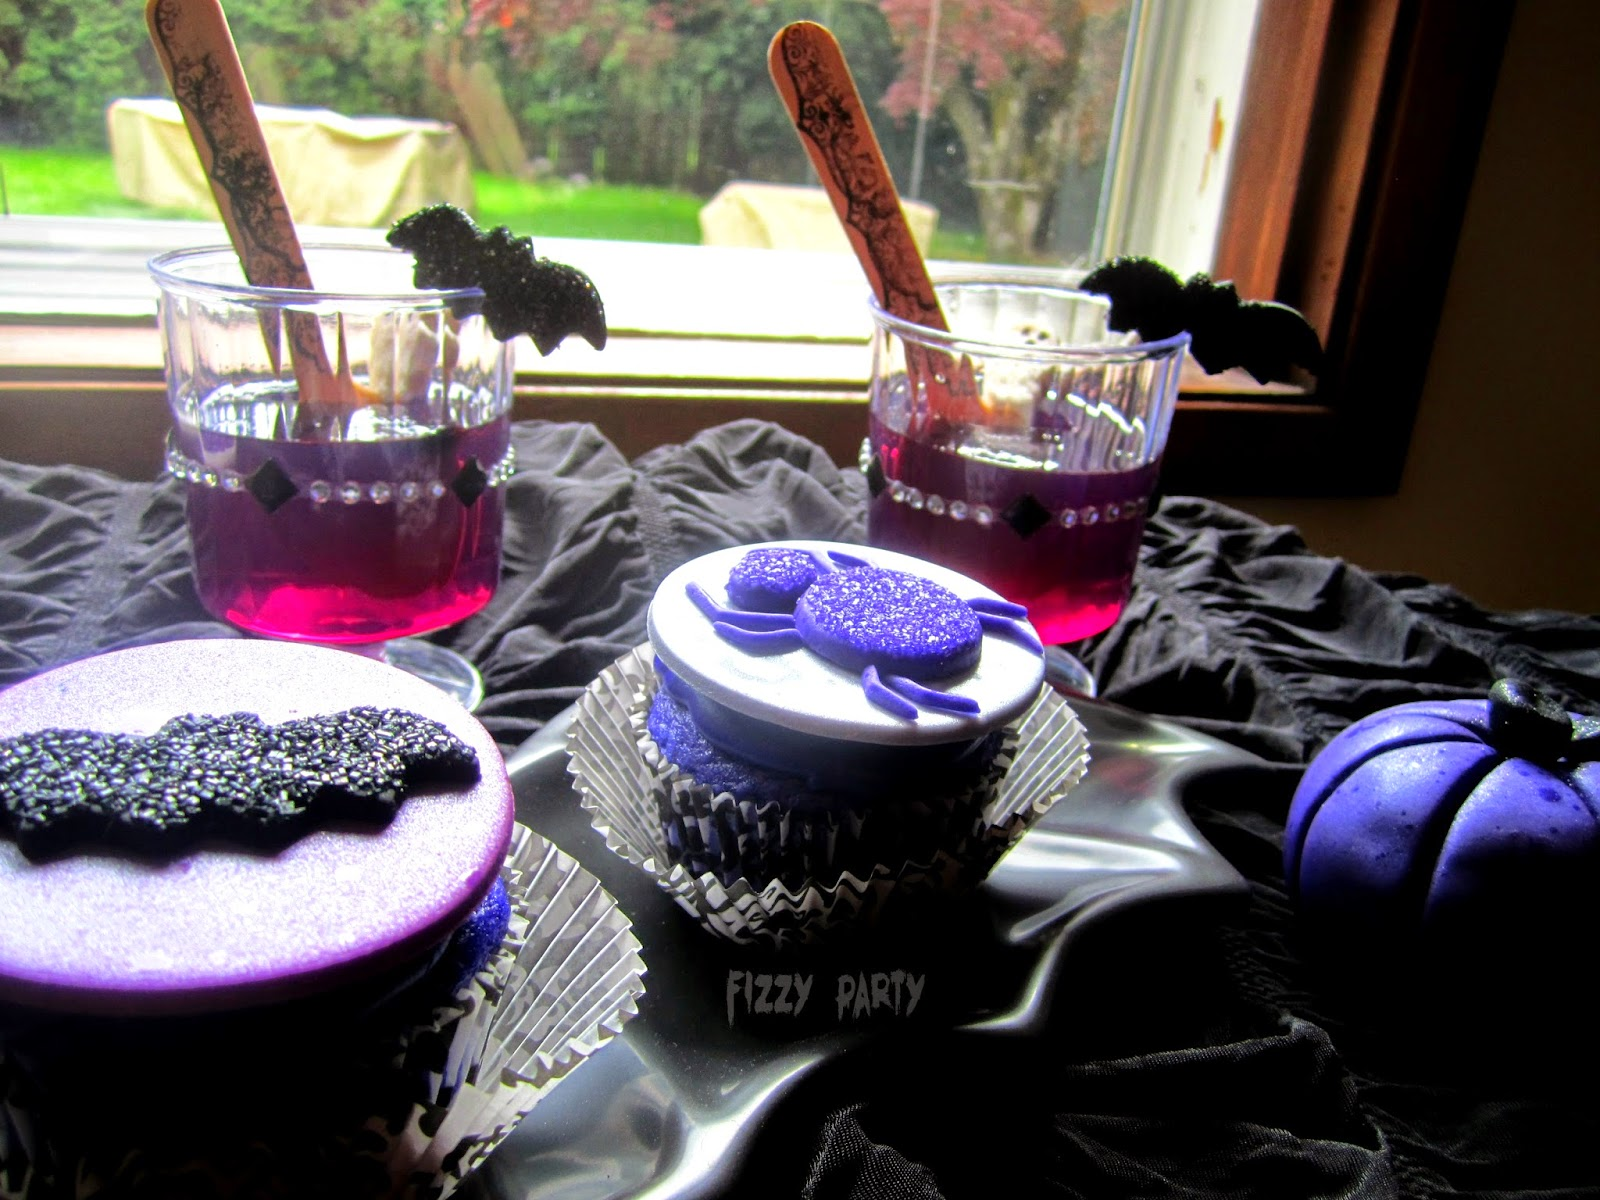 Halloween Ghouls Night Out Dessert Table by Fizzy Party